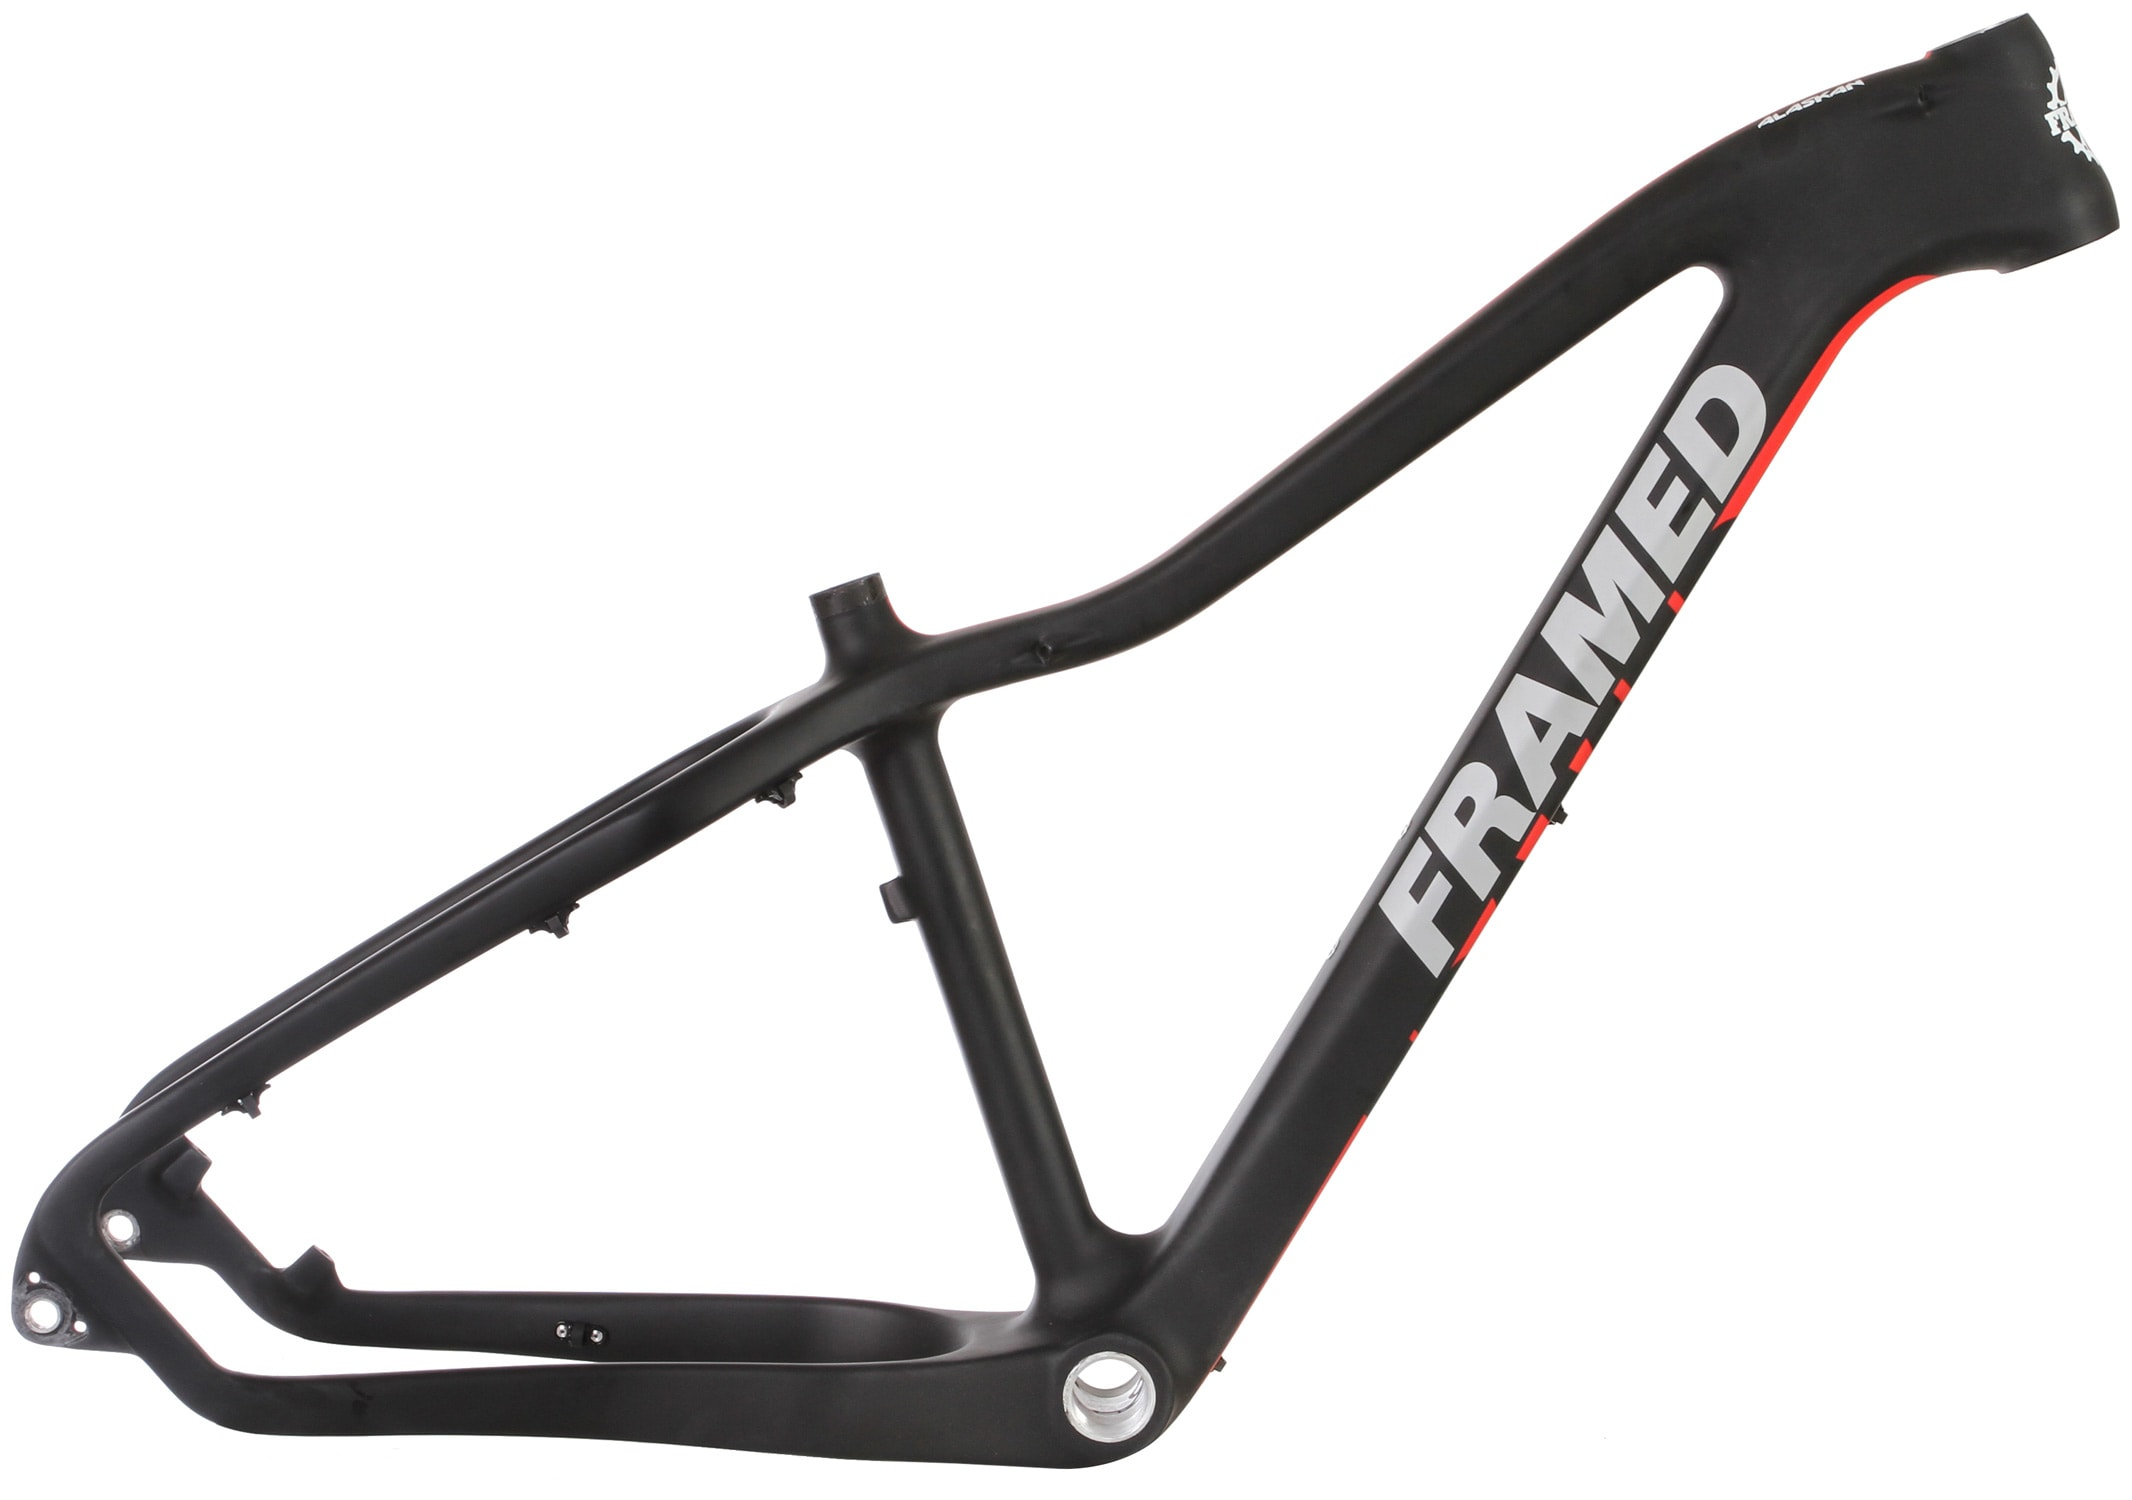 on sale framed alaskan carbon w carbon fork fat bike up to 45 off framed carbon carbon build